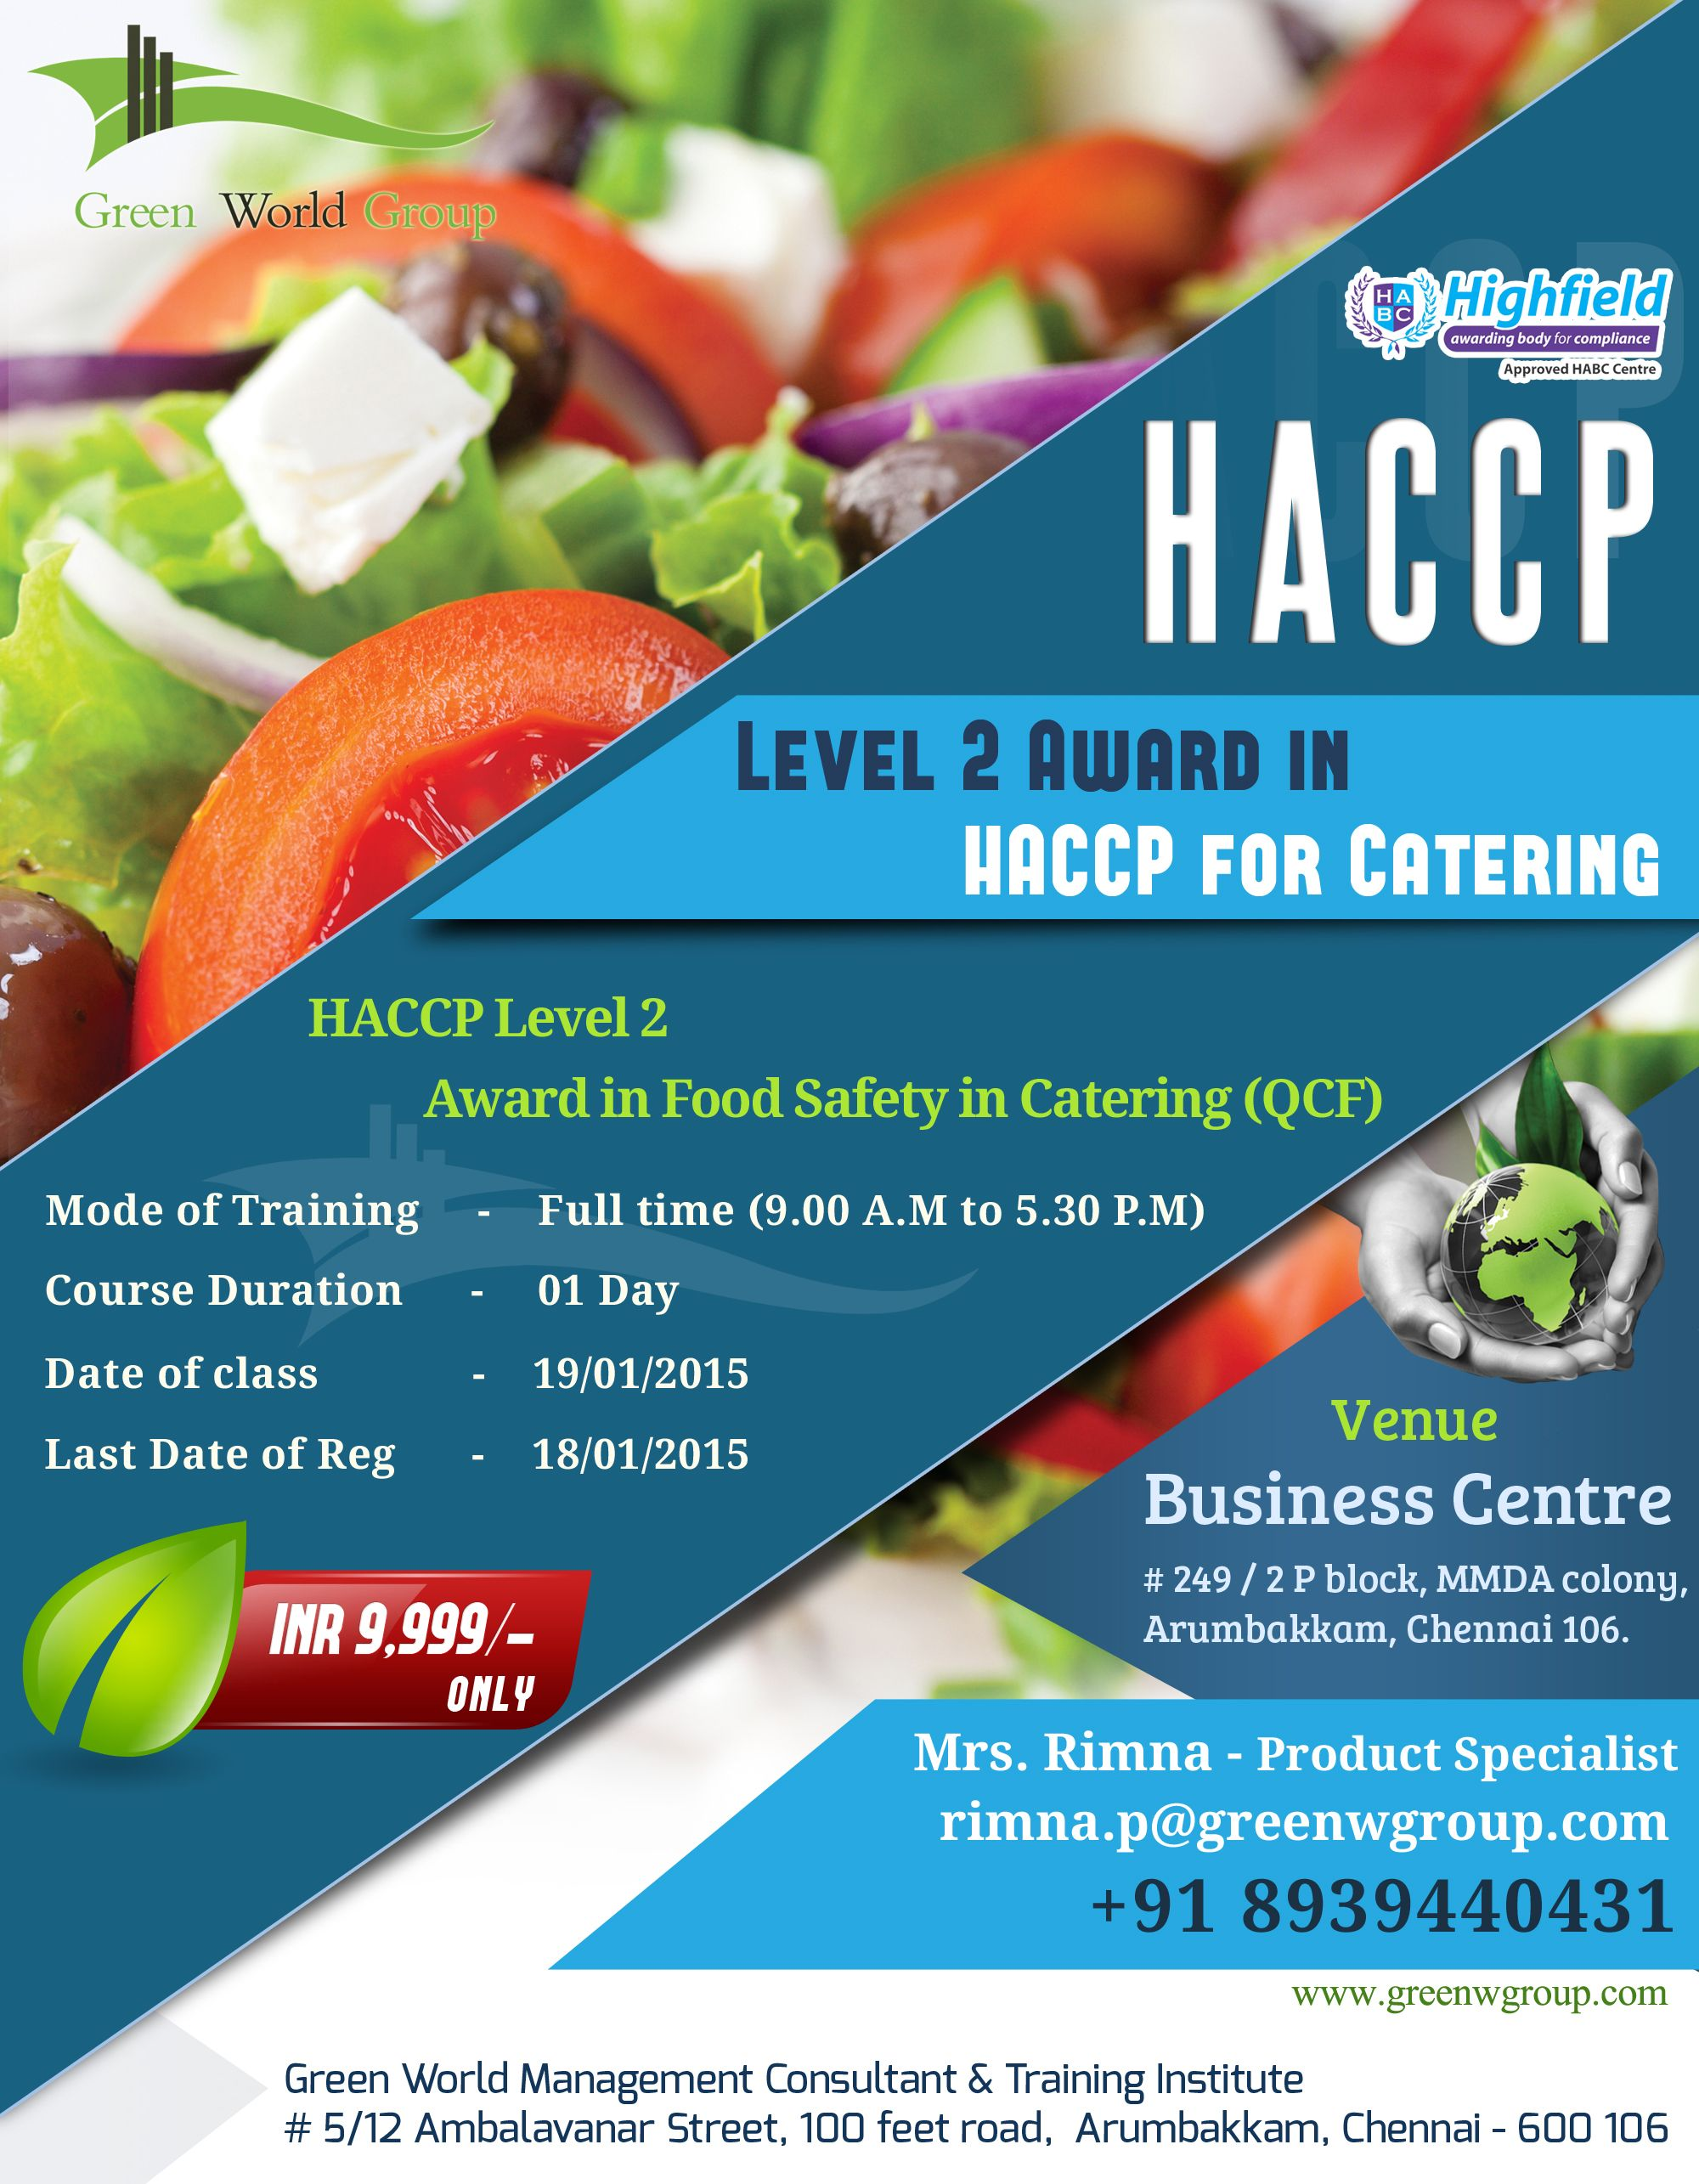 Green World Group Announce New Year Offer For Haccp Catering